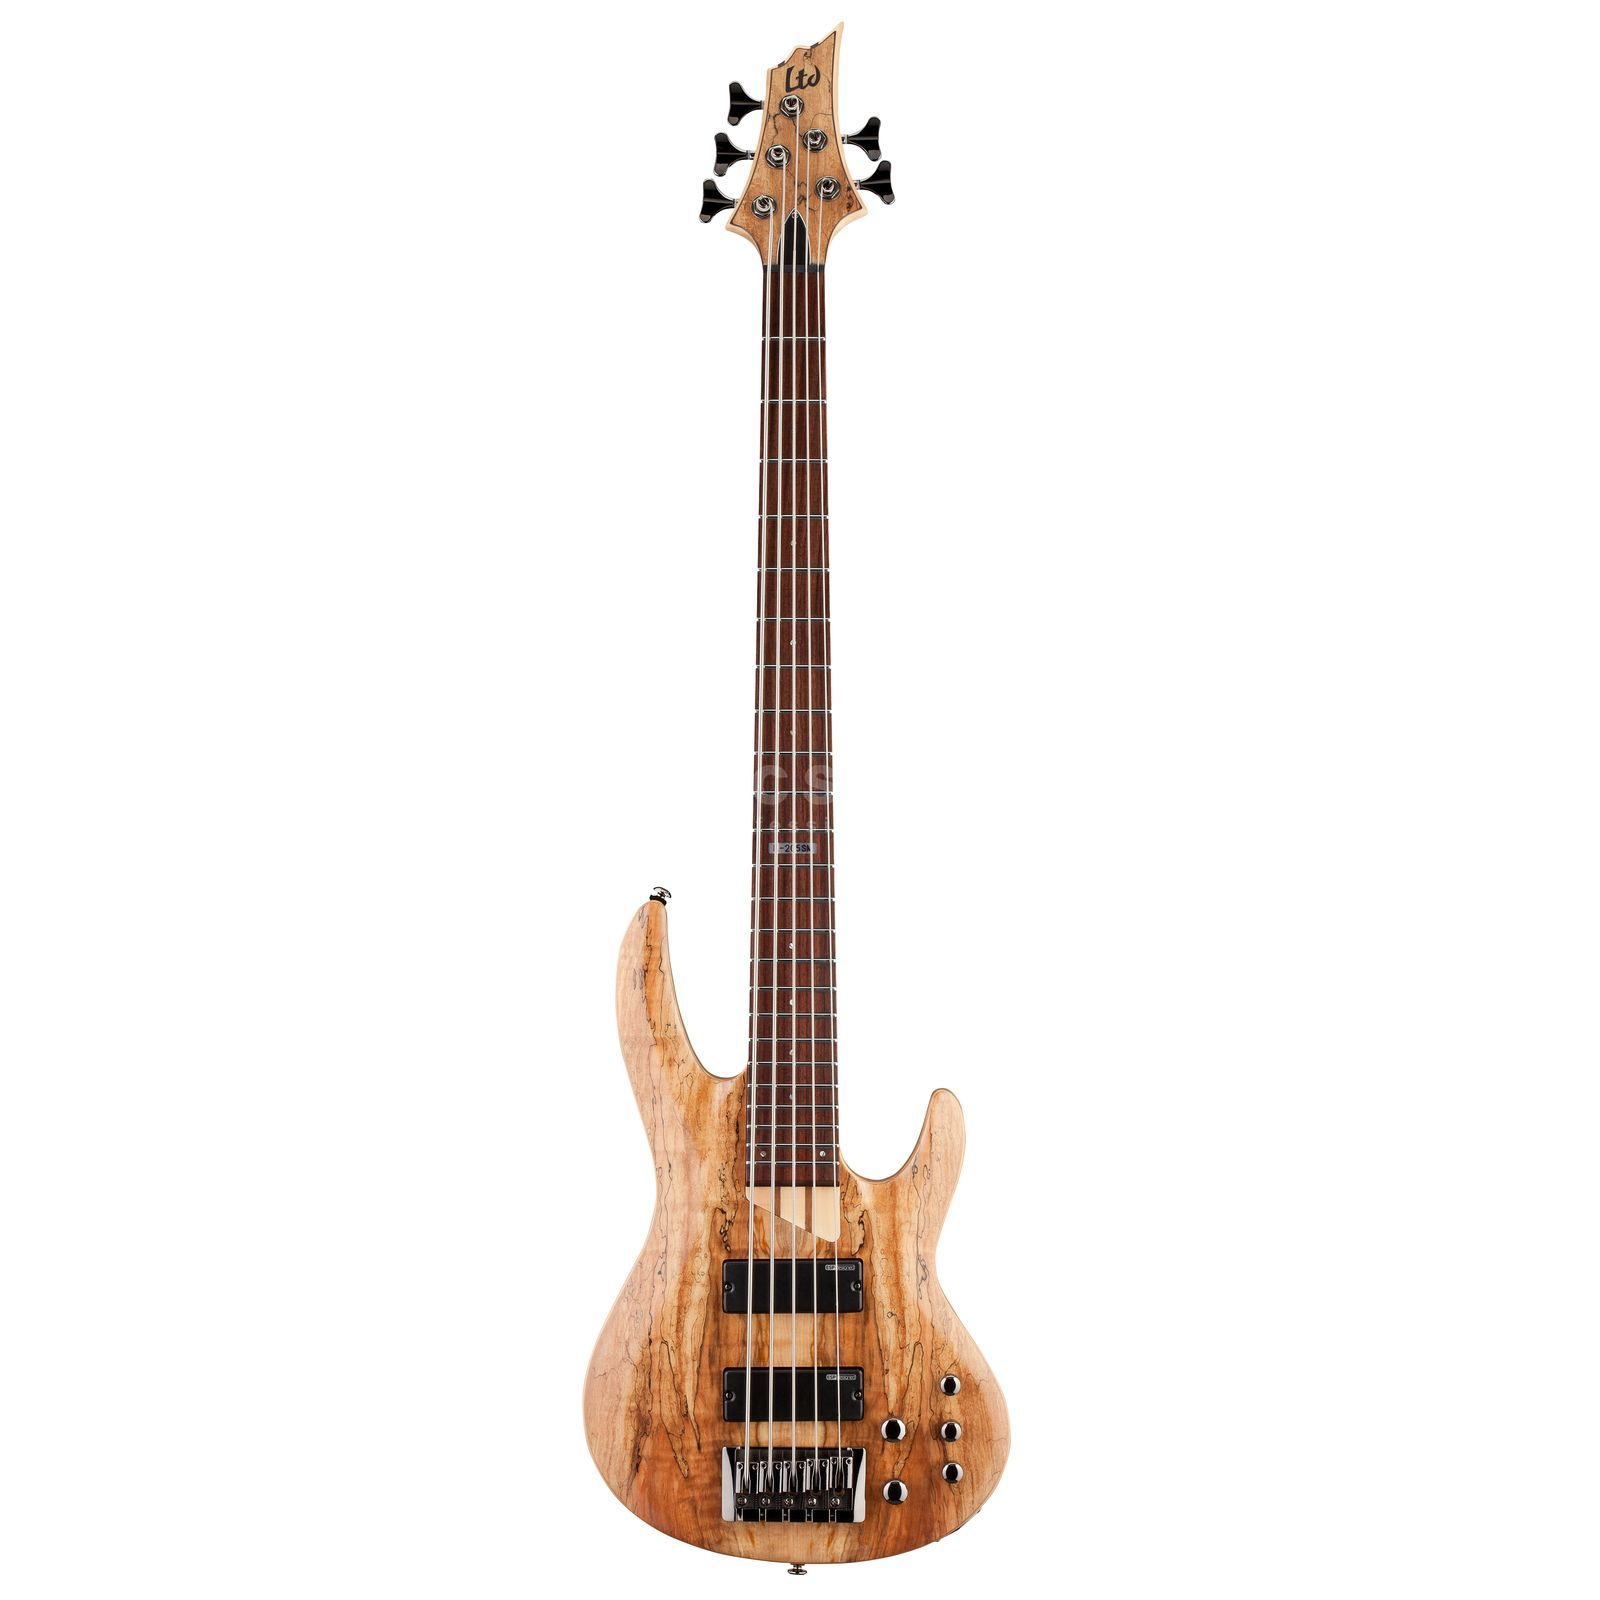 ESP LTD B-205SM Bass Guitar, Natur al Satin   Product Image